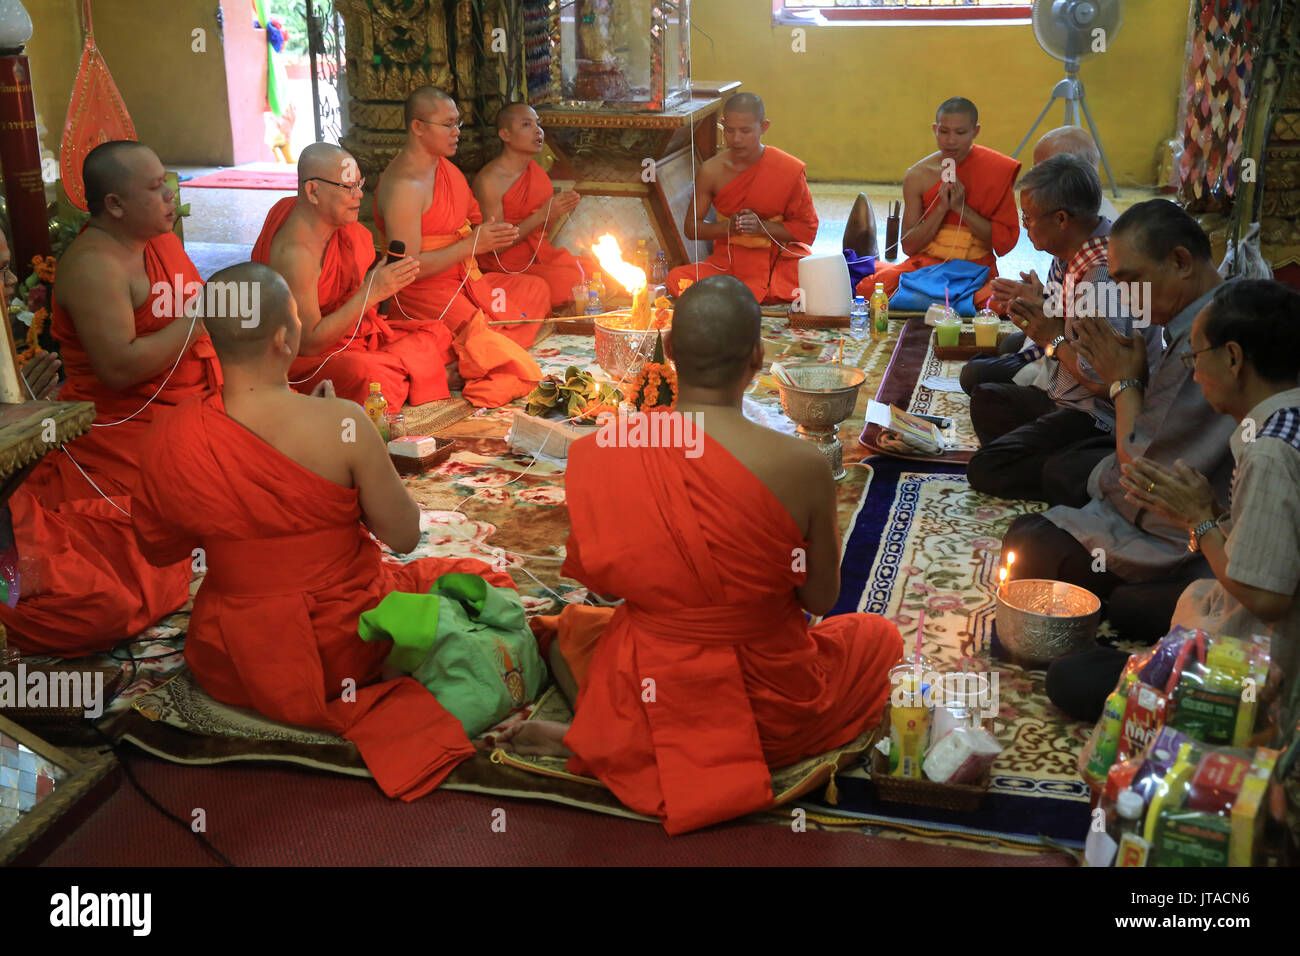 Buddhist monks praying, Sai Sin, the cotton thread symbolizing the sacred bond, Wat Simuong (Wat Si Muang), Vientiane, Laos - Stock Image